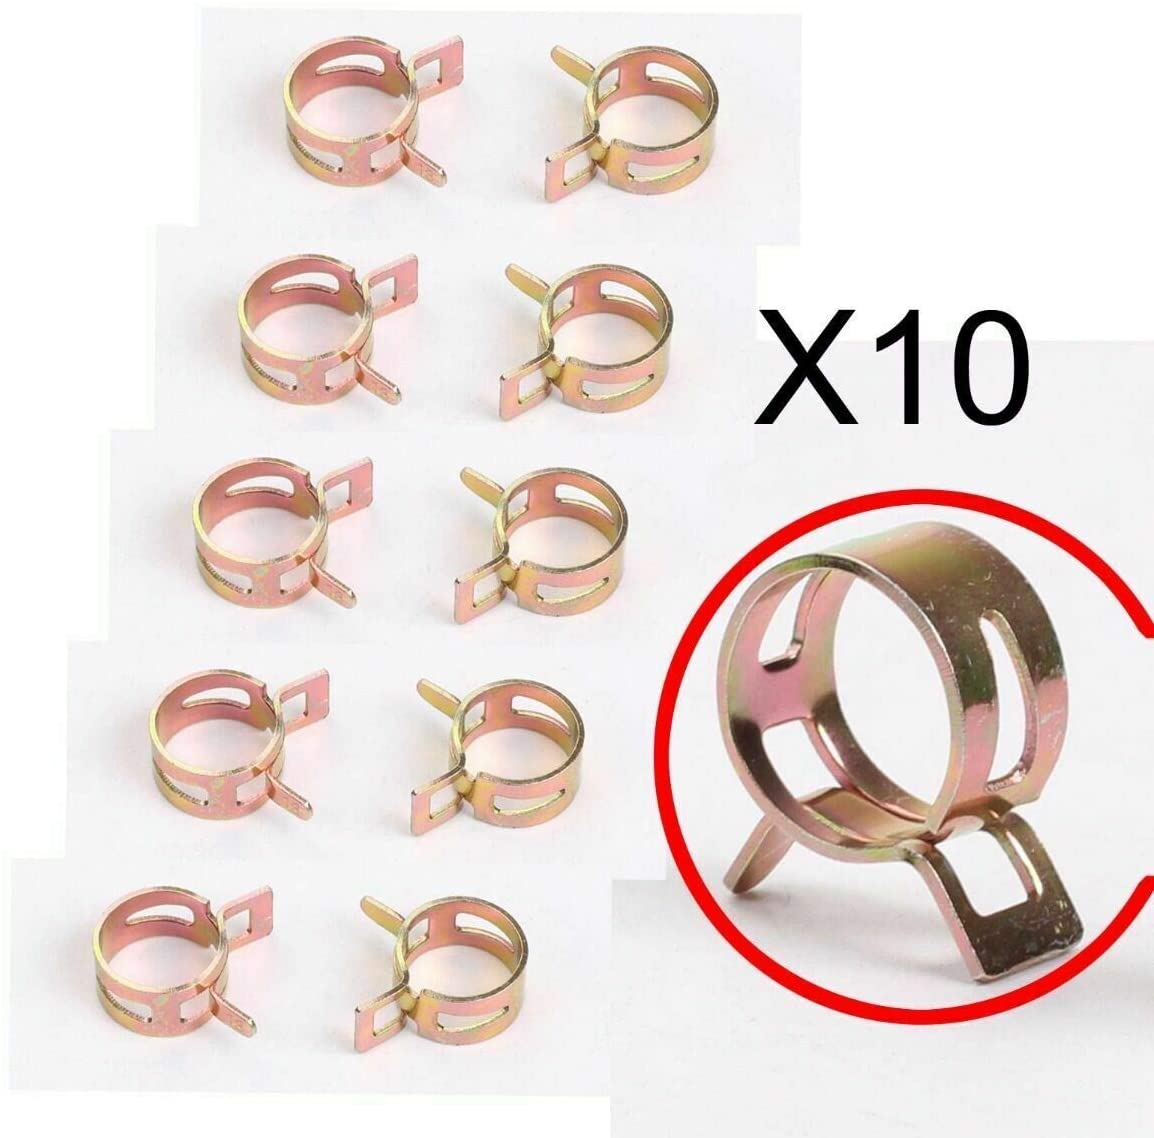 BETTERCLOUD 10 PCS 9mm 0.35